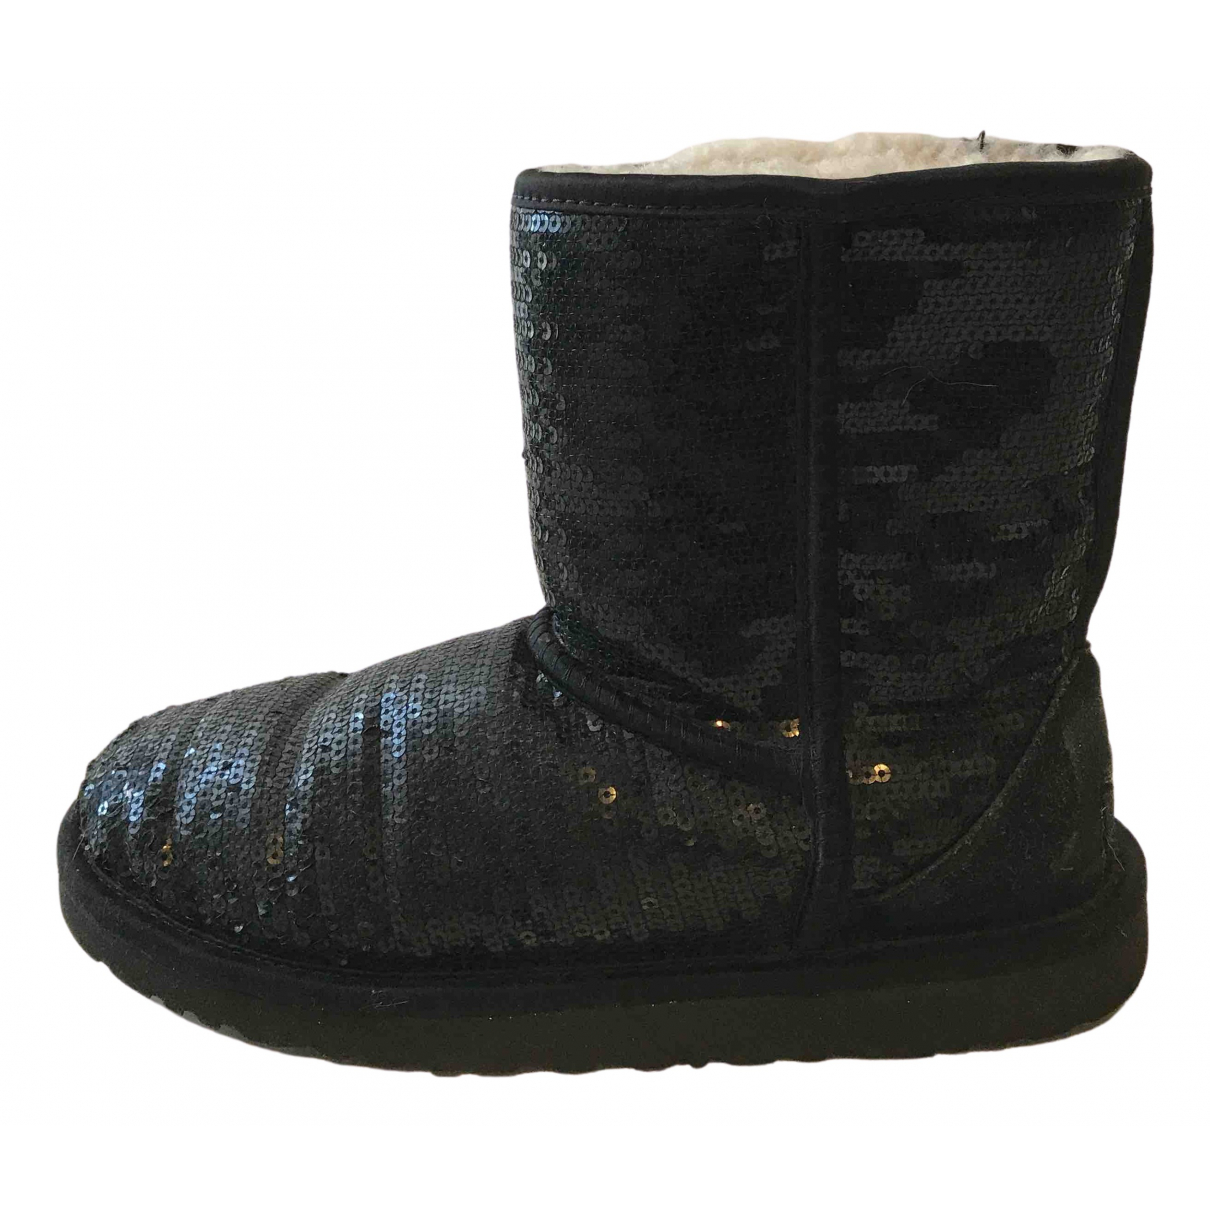 Ugg \N Black Glitter Boots for Women 35 EU